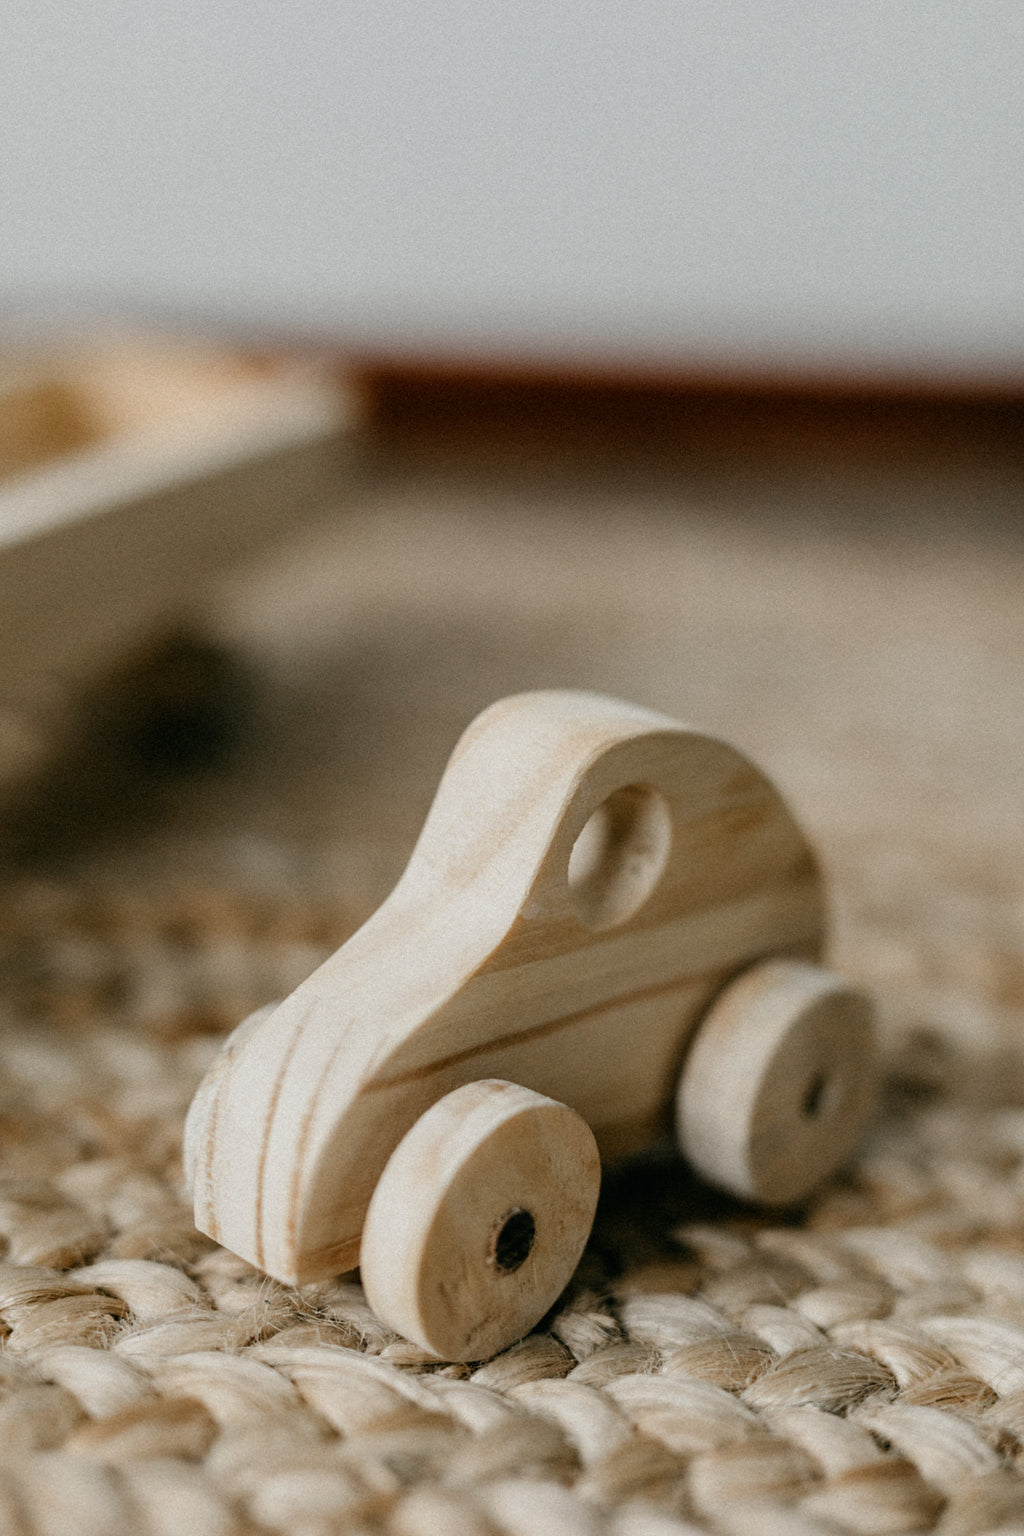 Wooden toy - Car